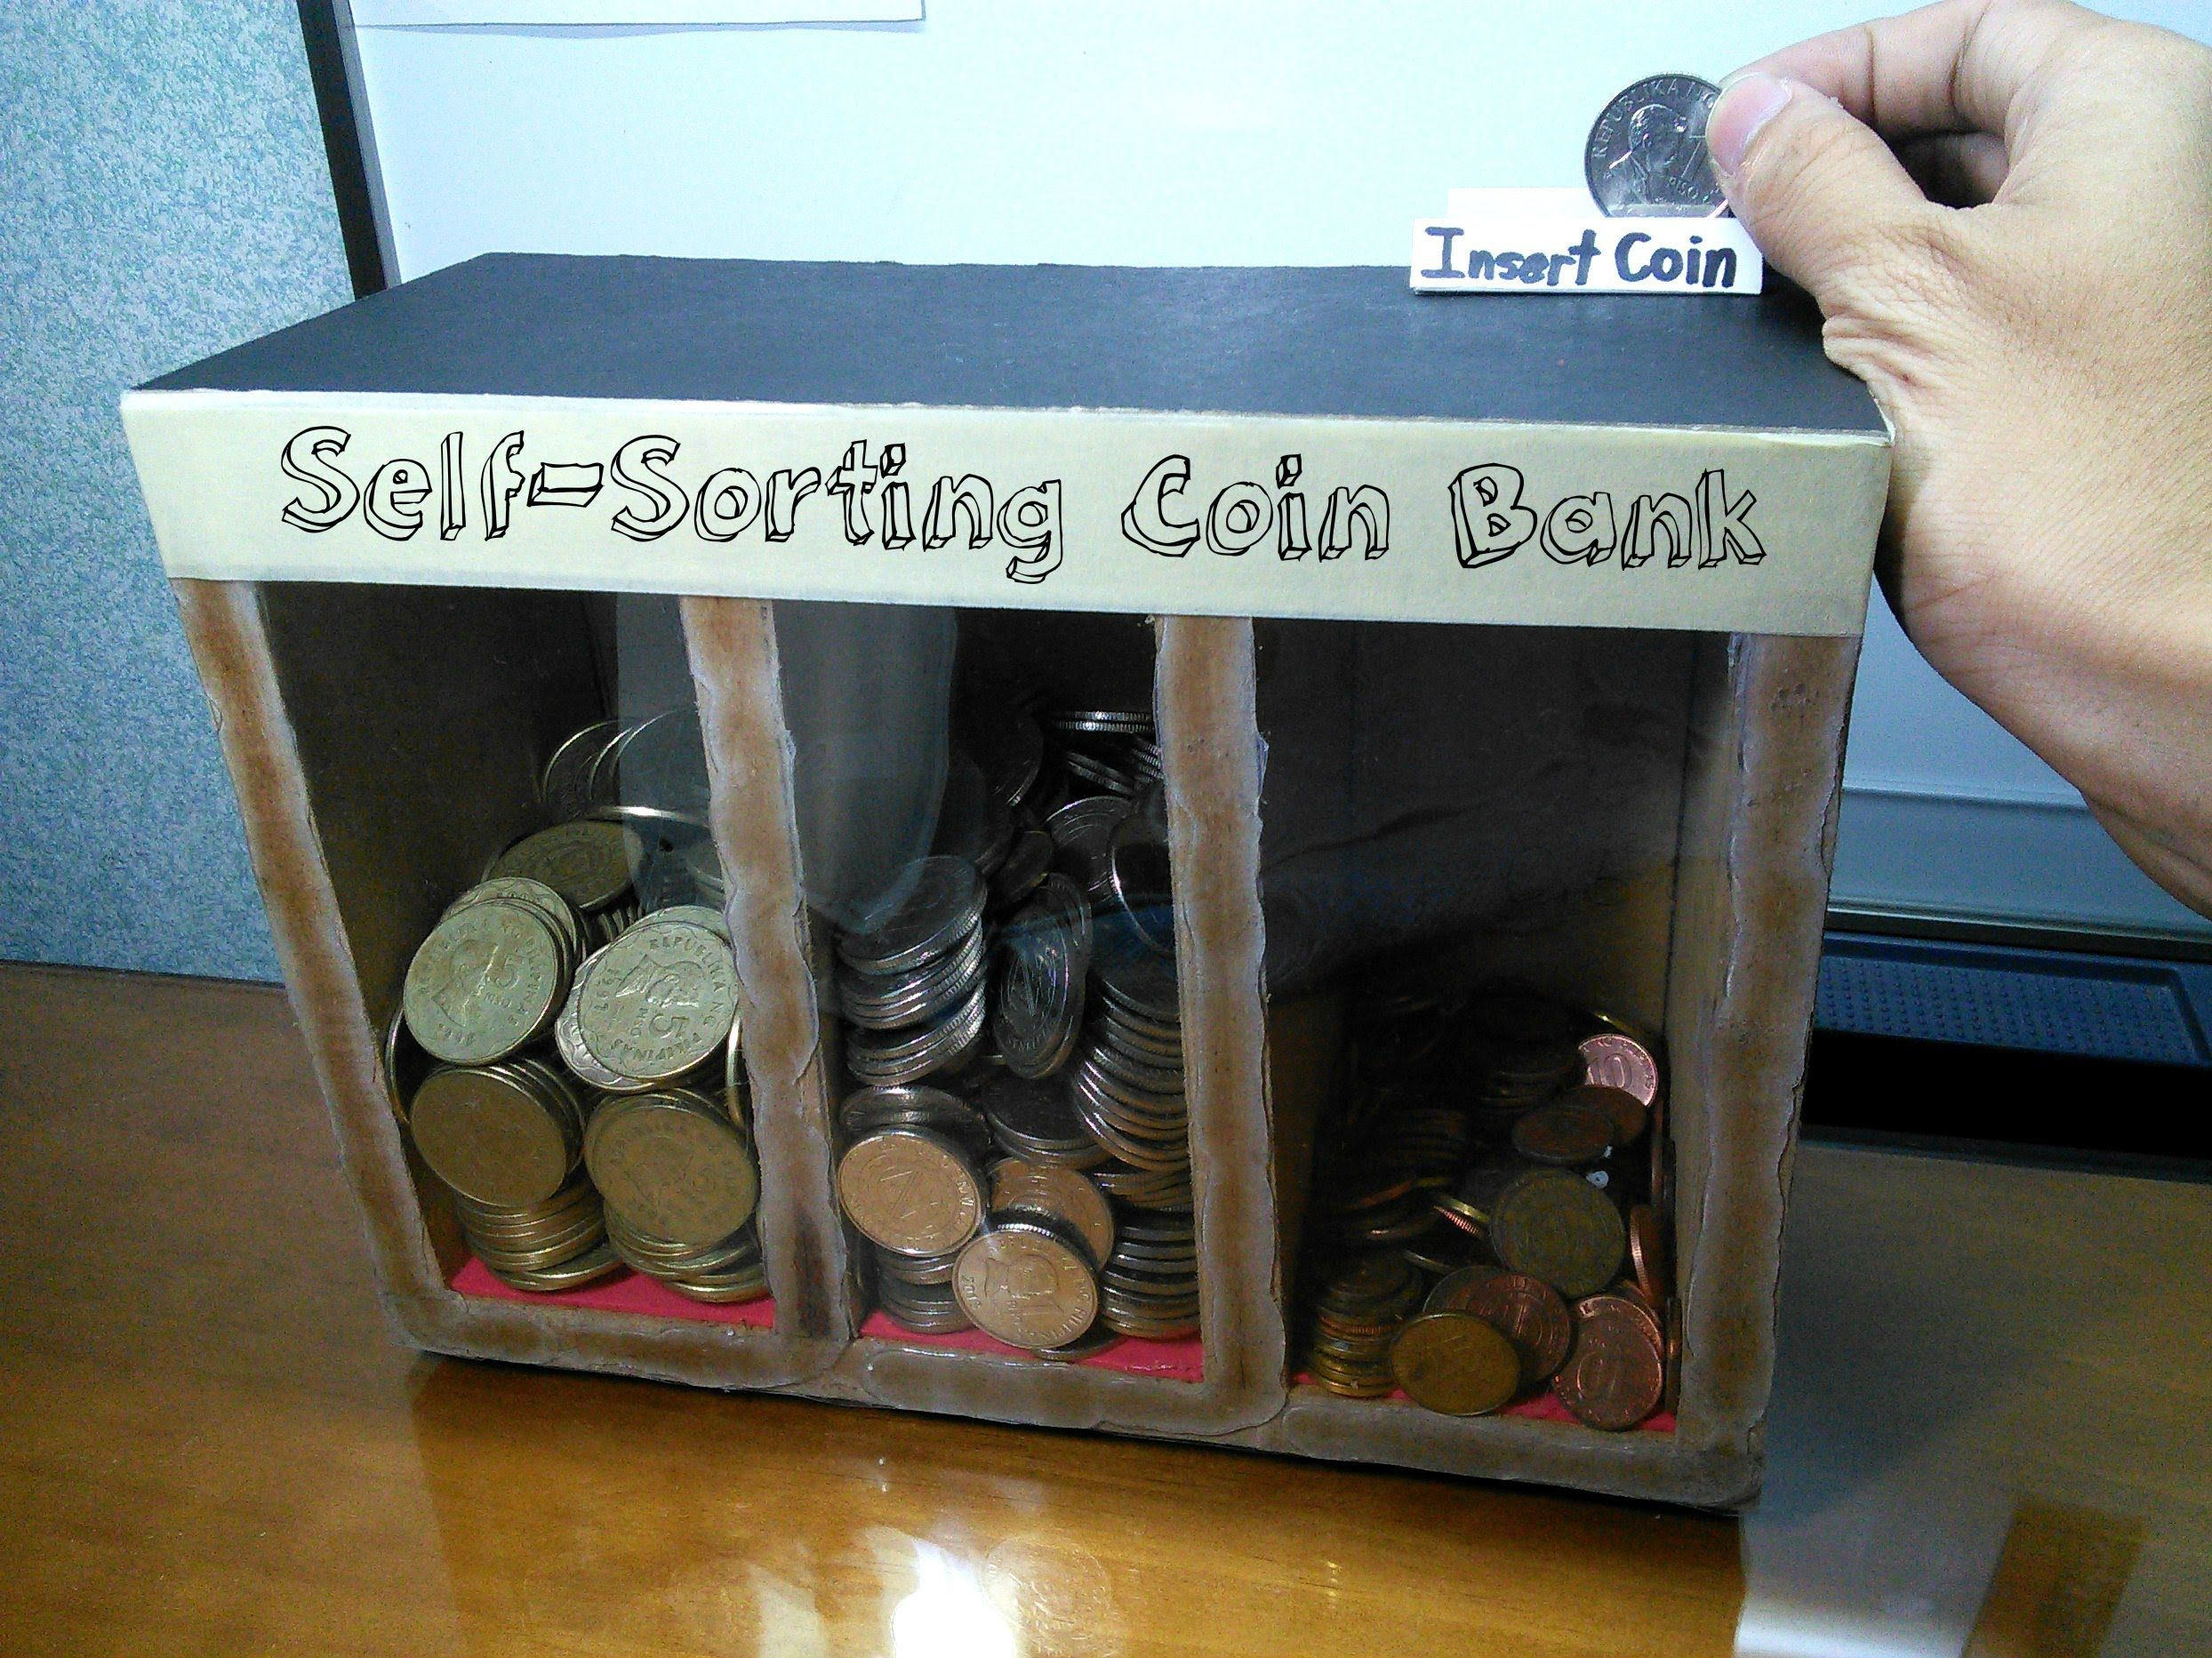 Piggy Bank Idea Diy Self Sorting Coin Bank Diy Pinterest Wood Toys